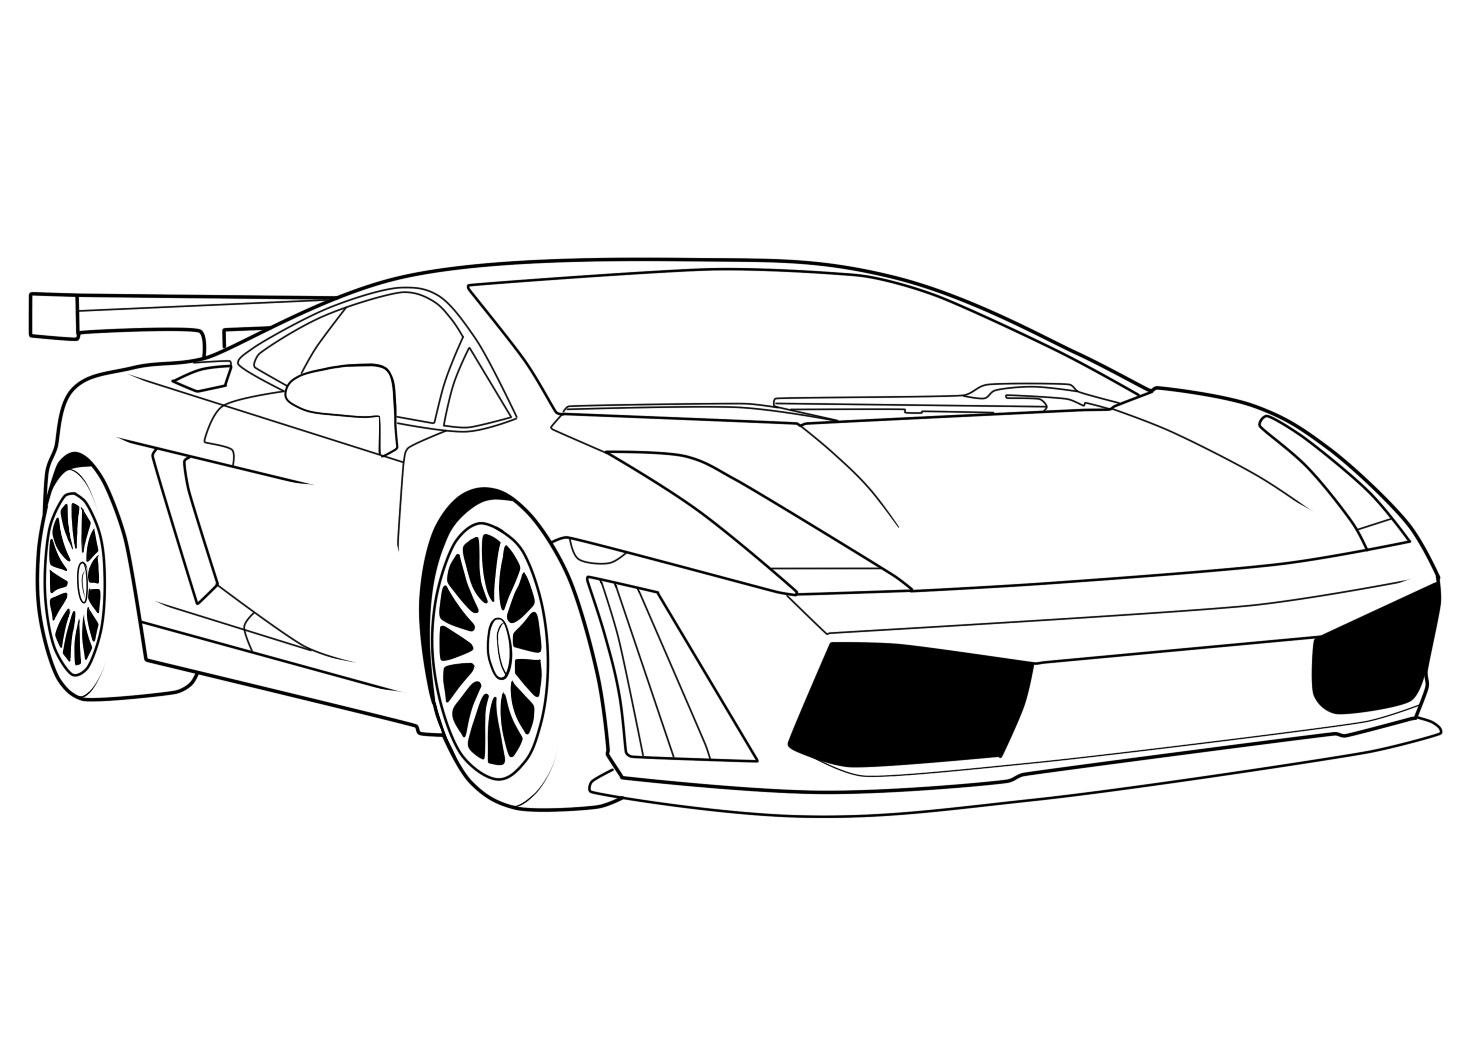 coloring car for kids cars coloring pages minister coloring kids for car coloring